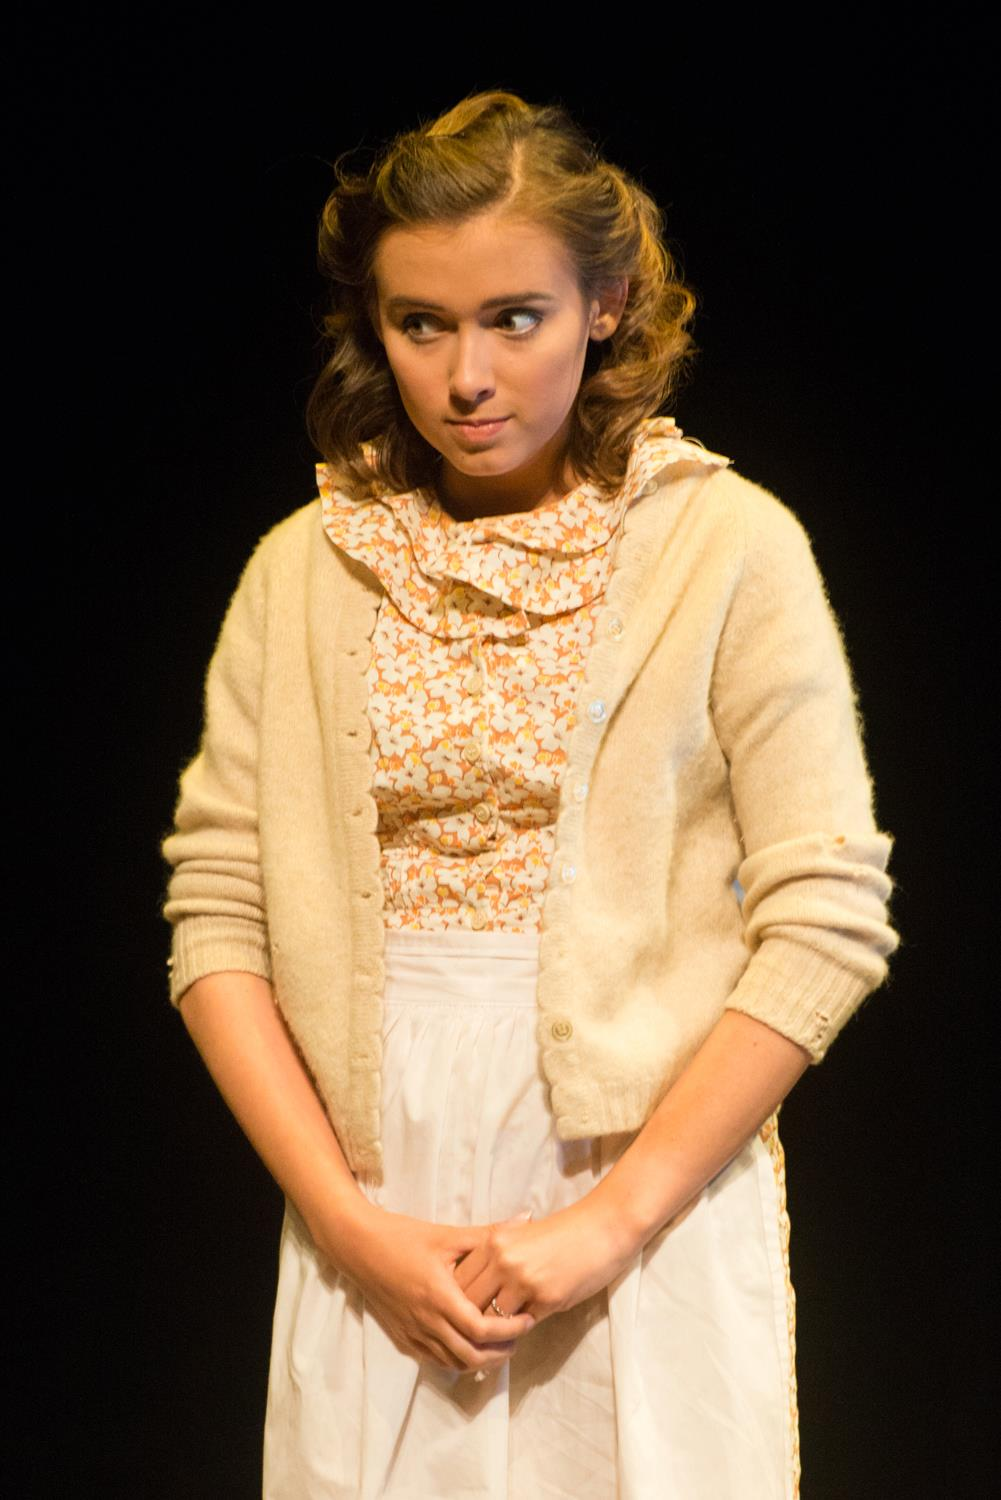 Margaret - The 39 Steps